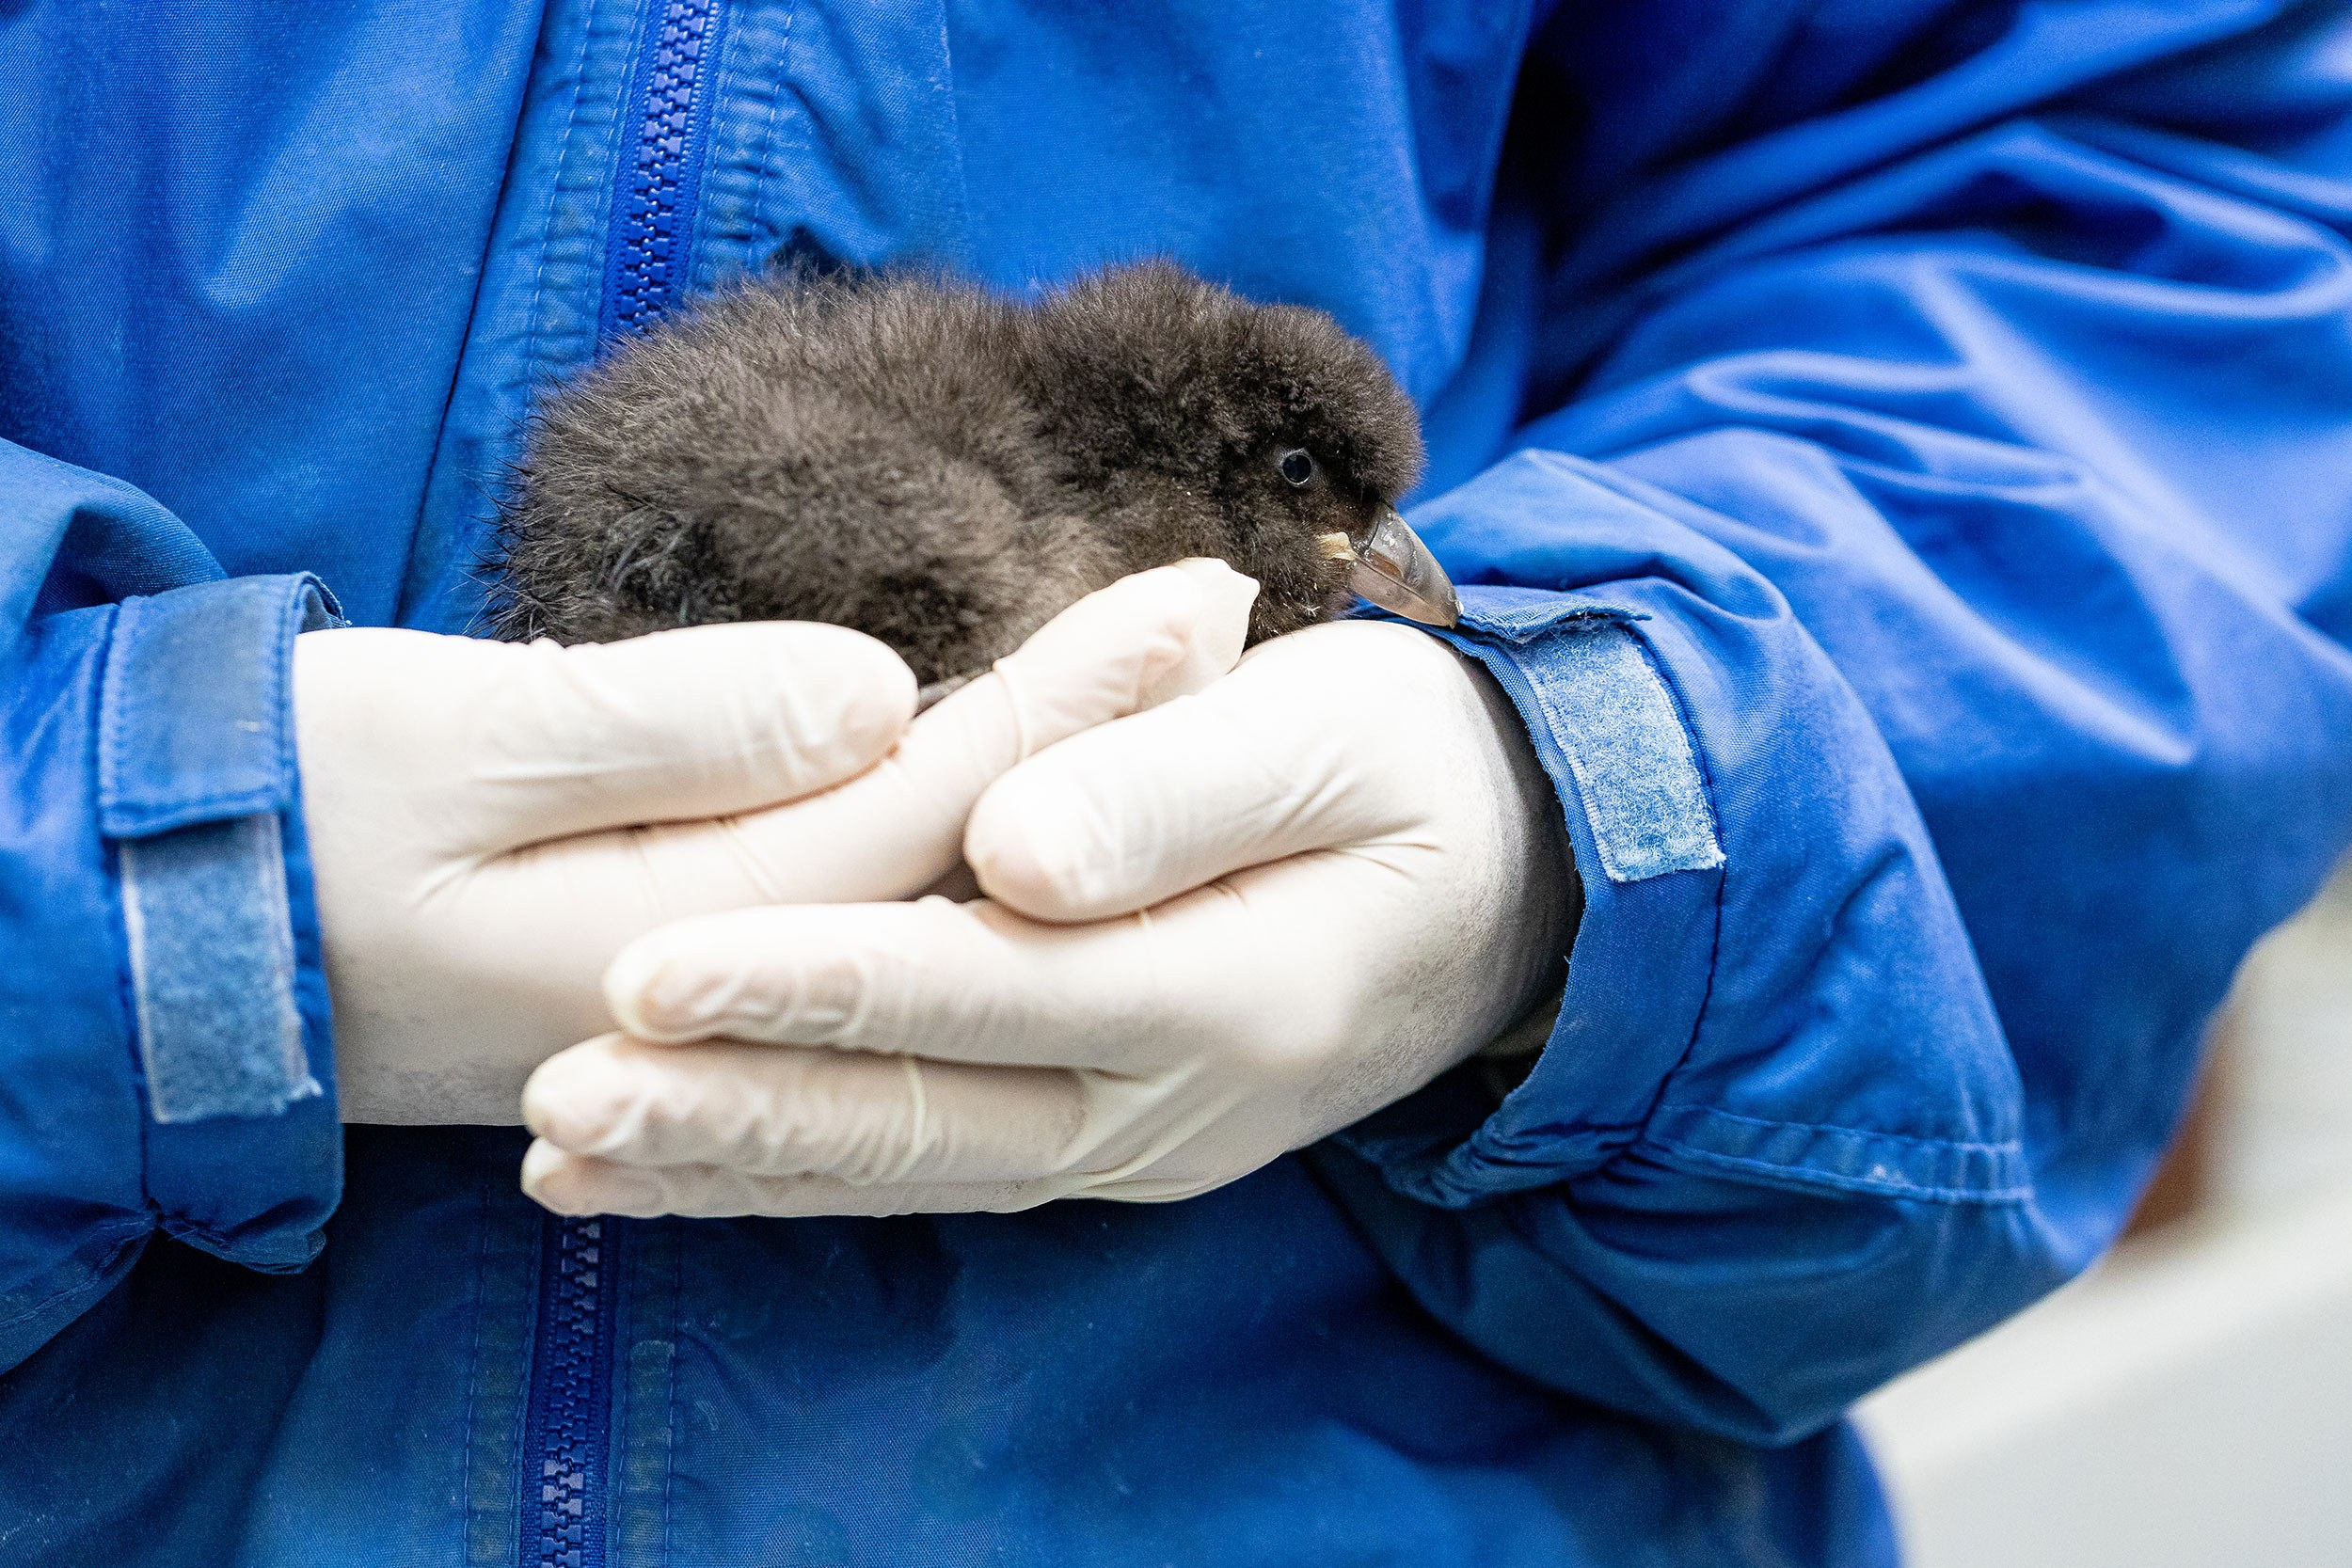 Holding a Puffin Chick